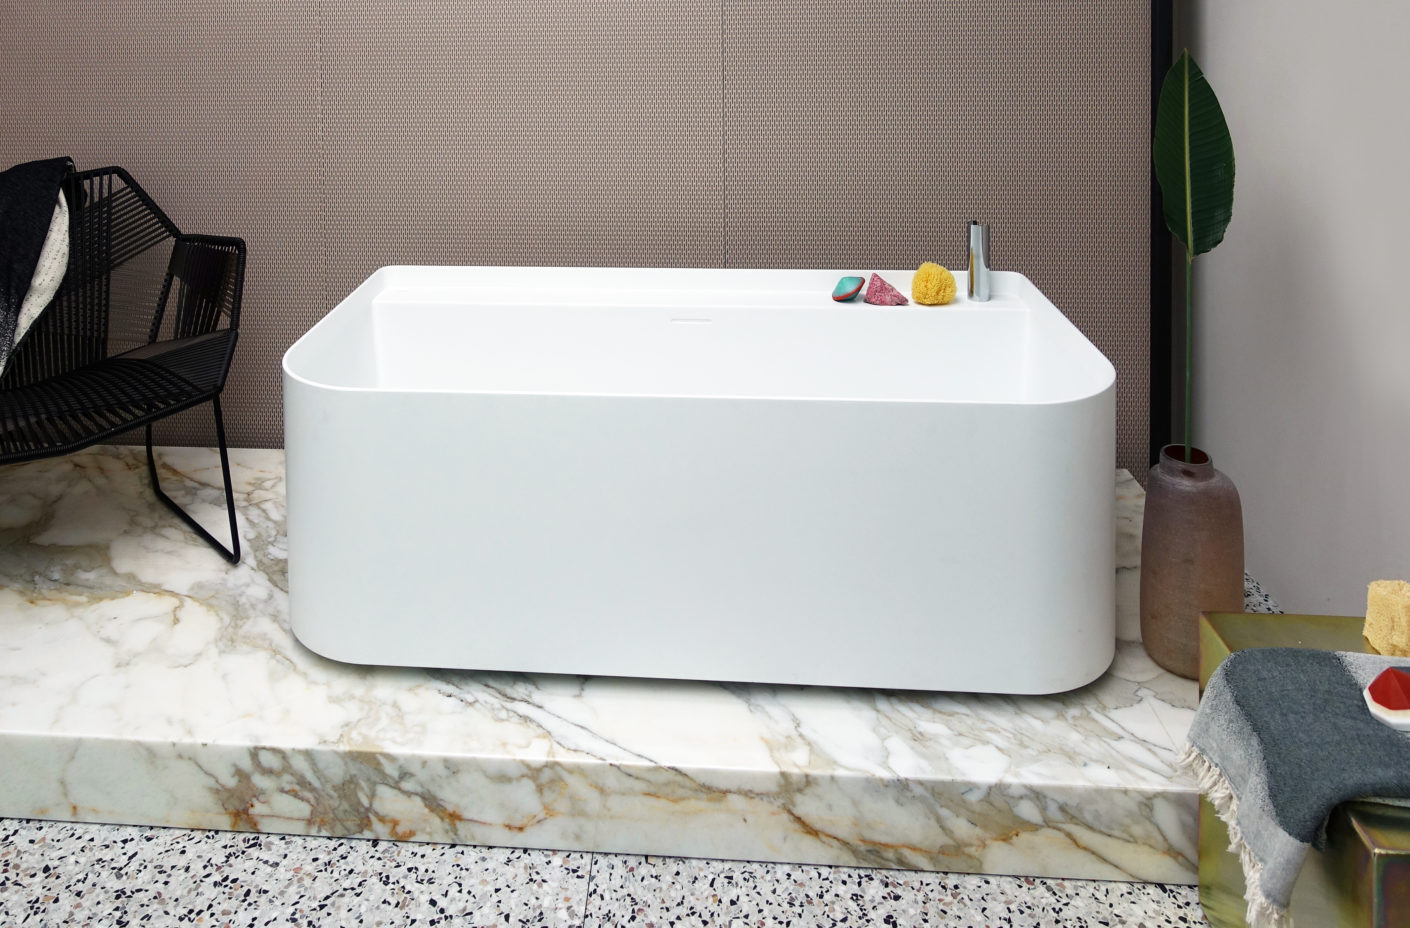 Functional and sculptural: Patricia Urquiola puts the bath on a marble base while running, and offers a built-in tray for sponge and soap.